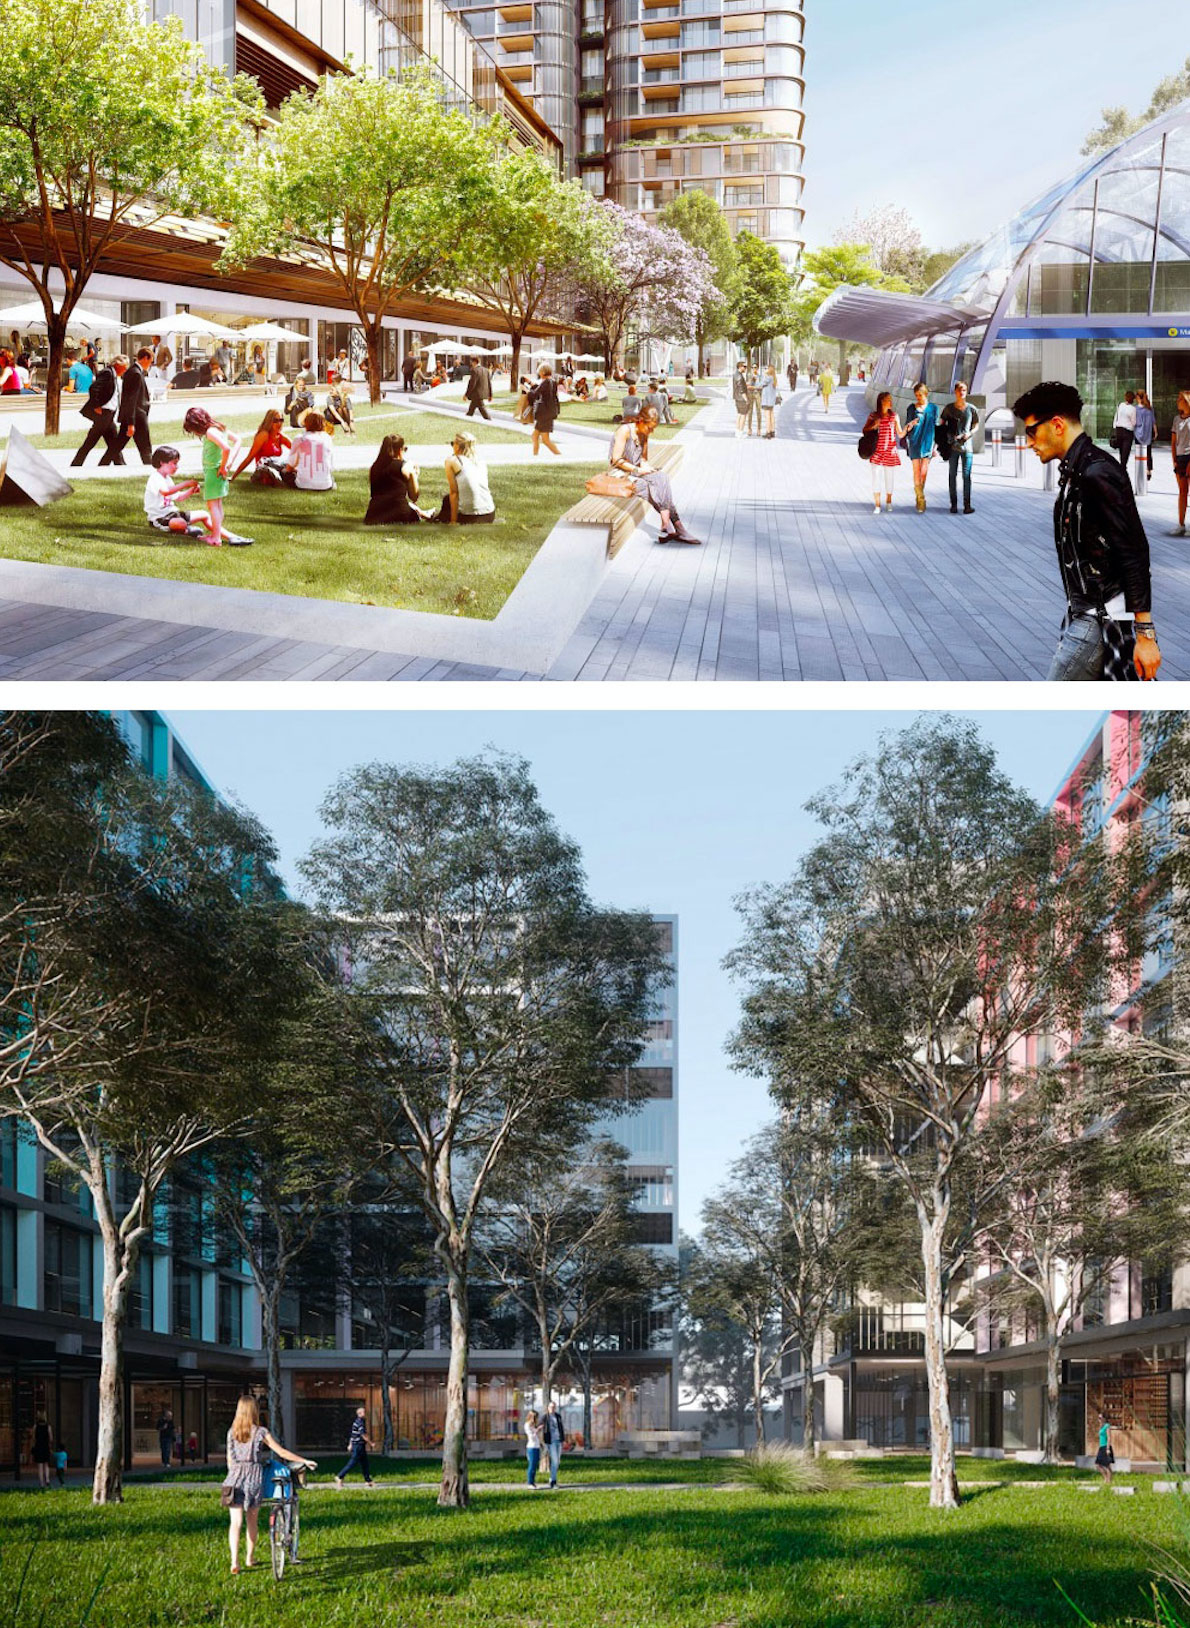 A network of public spaces will help activate the precinct.